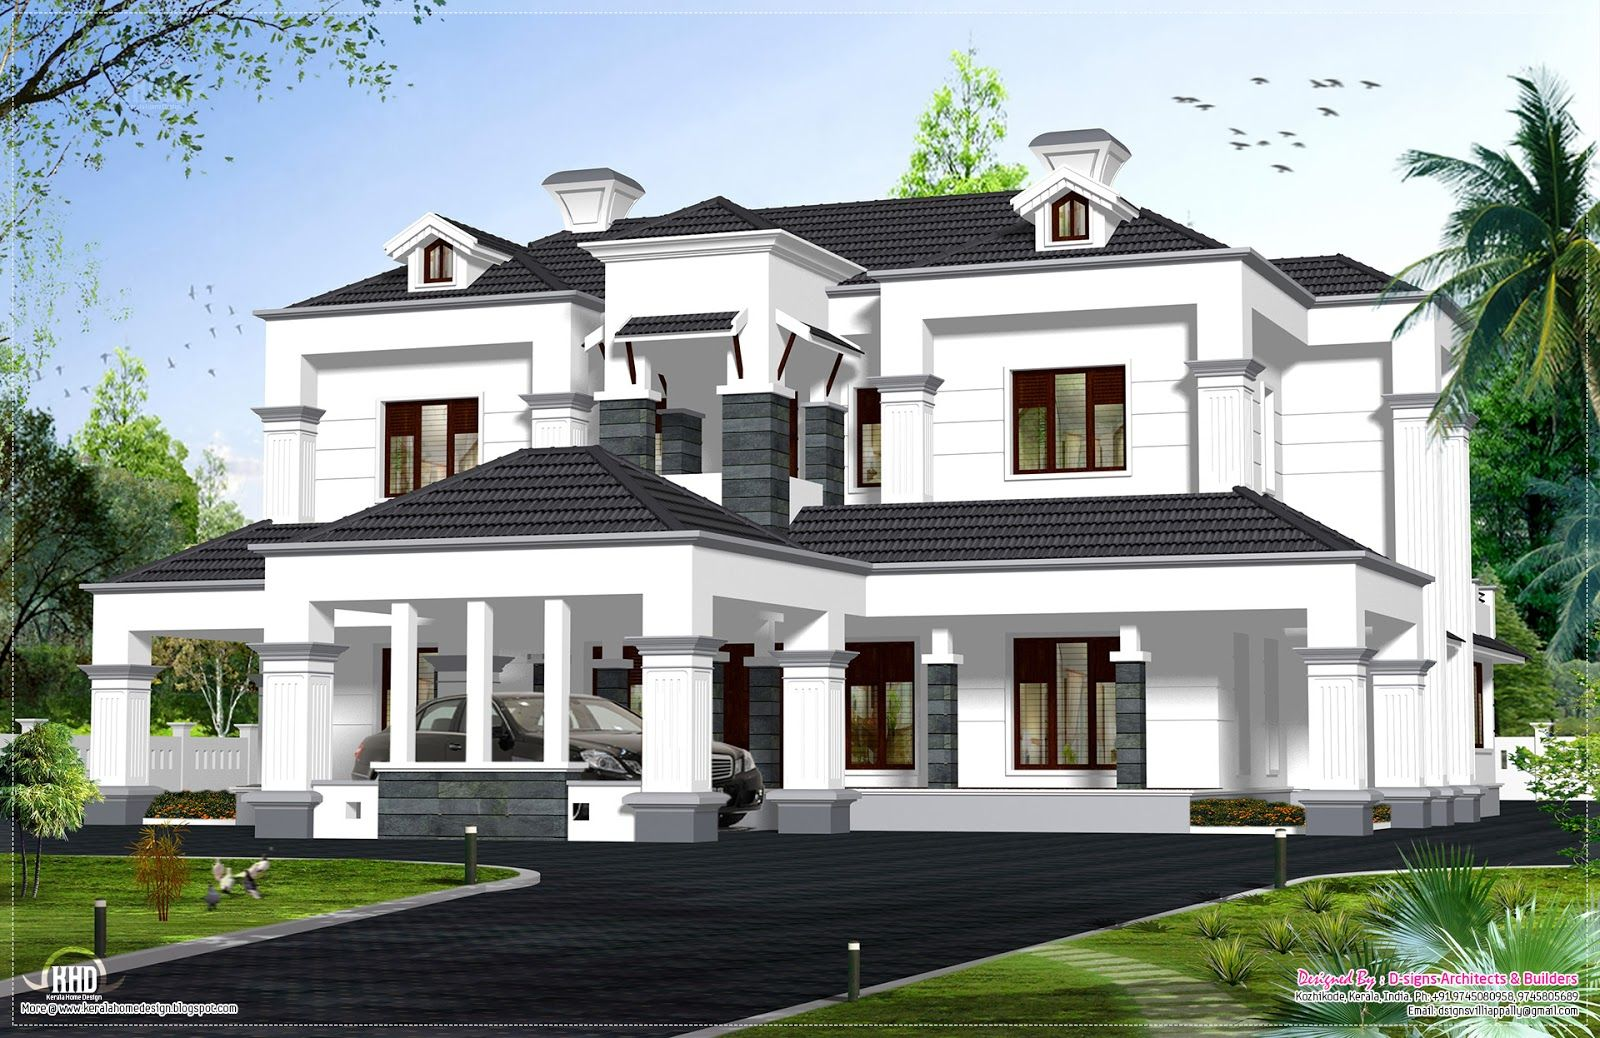 Floor plan design kerala single house plans storey trend Luxury victorian house plans